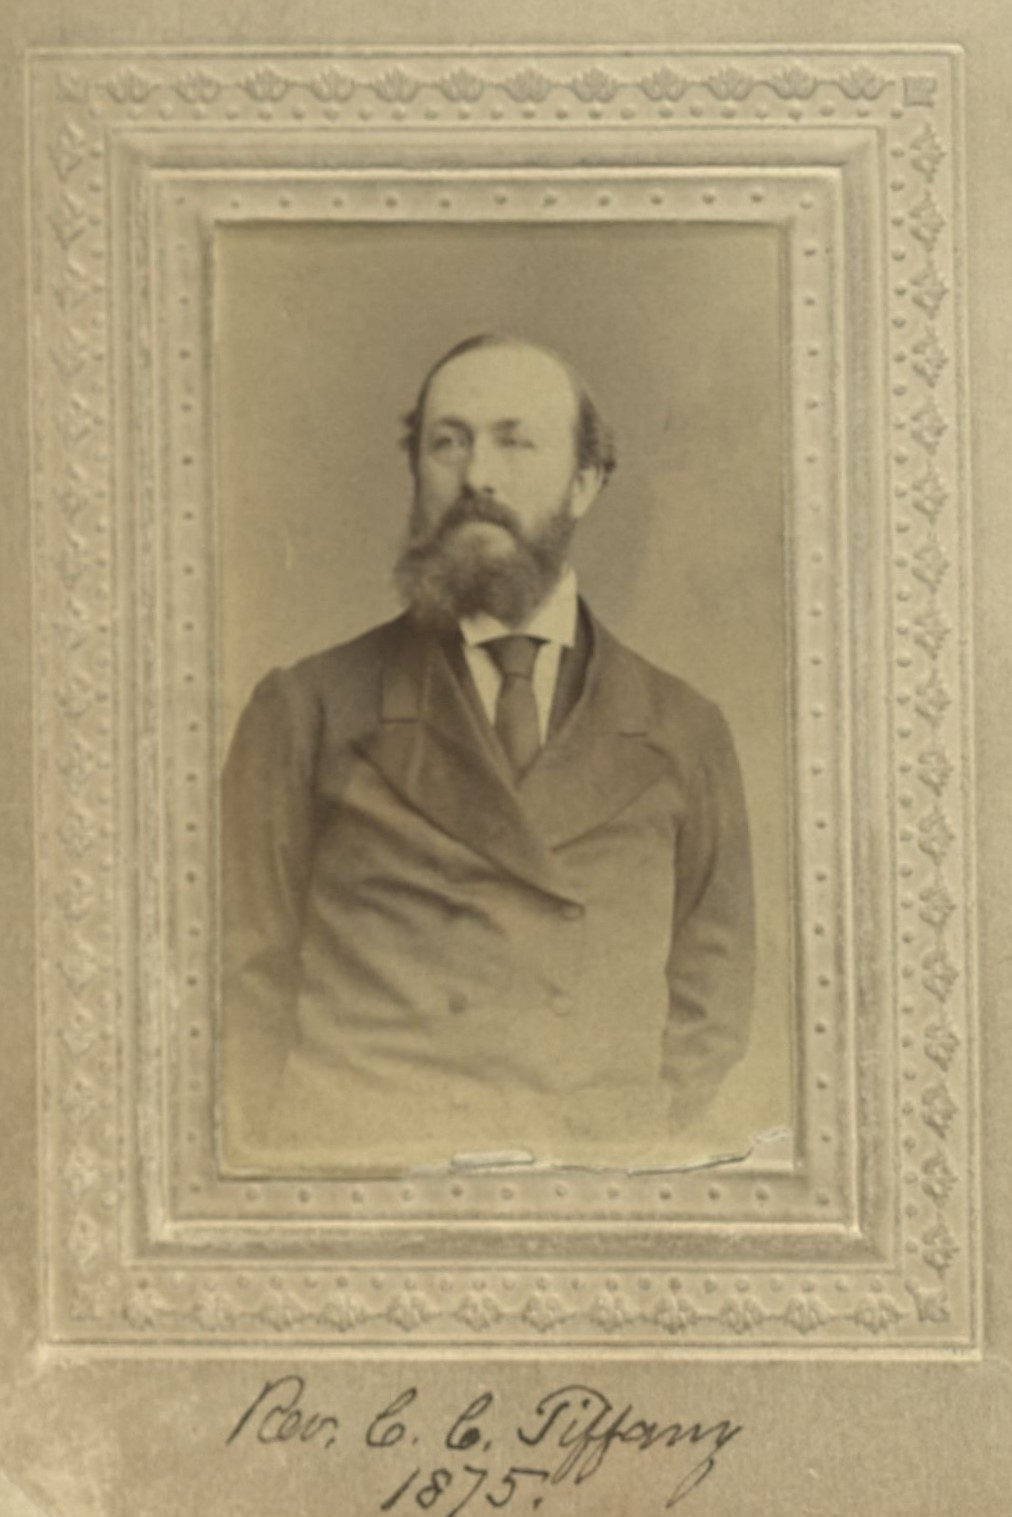 Member portrait of Charles Comfort Tiffany